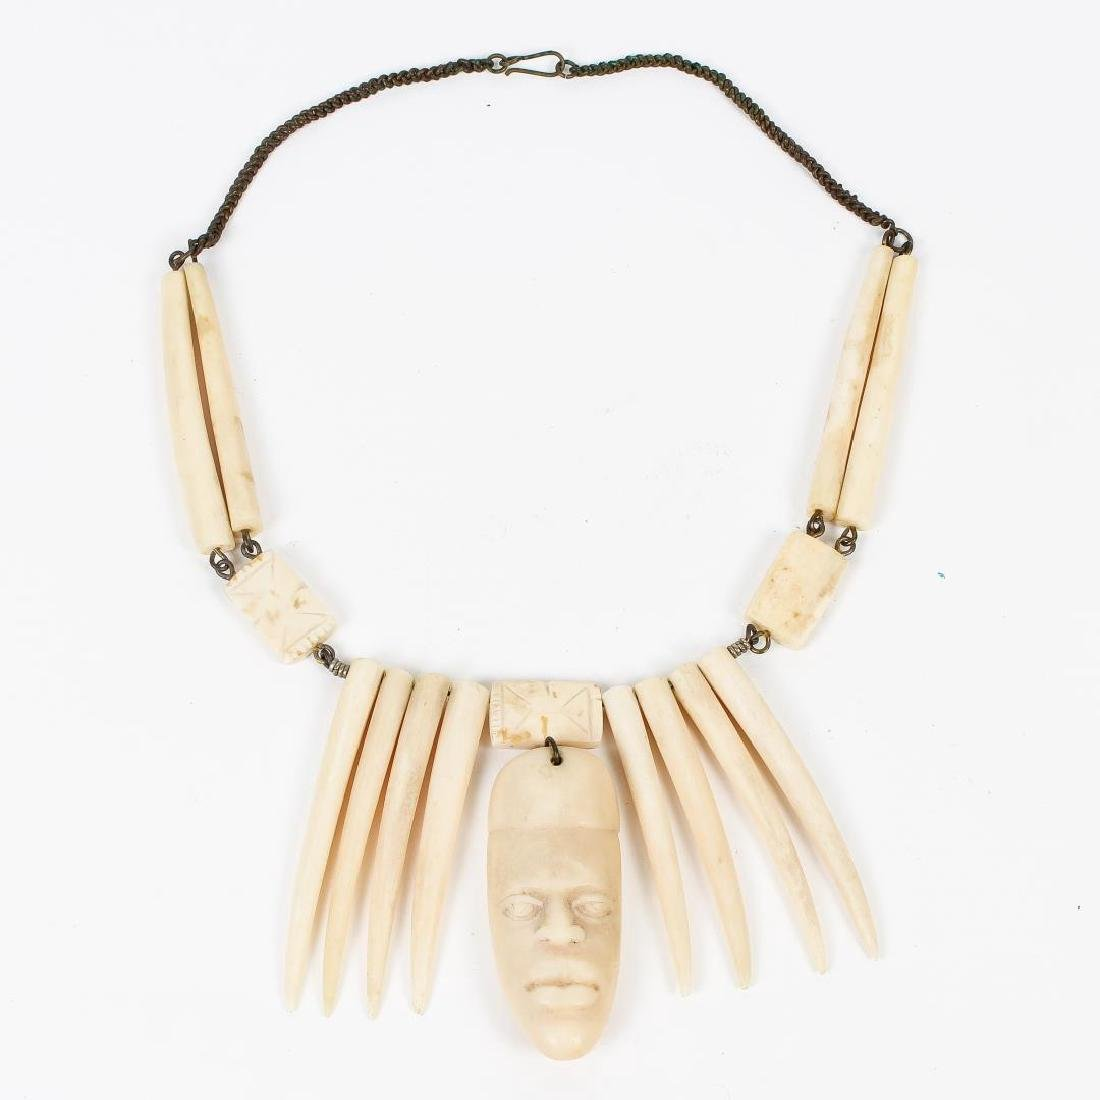 Tribal Carved Bone or Tusk Necklace